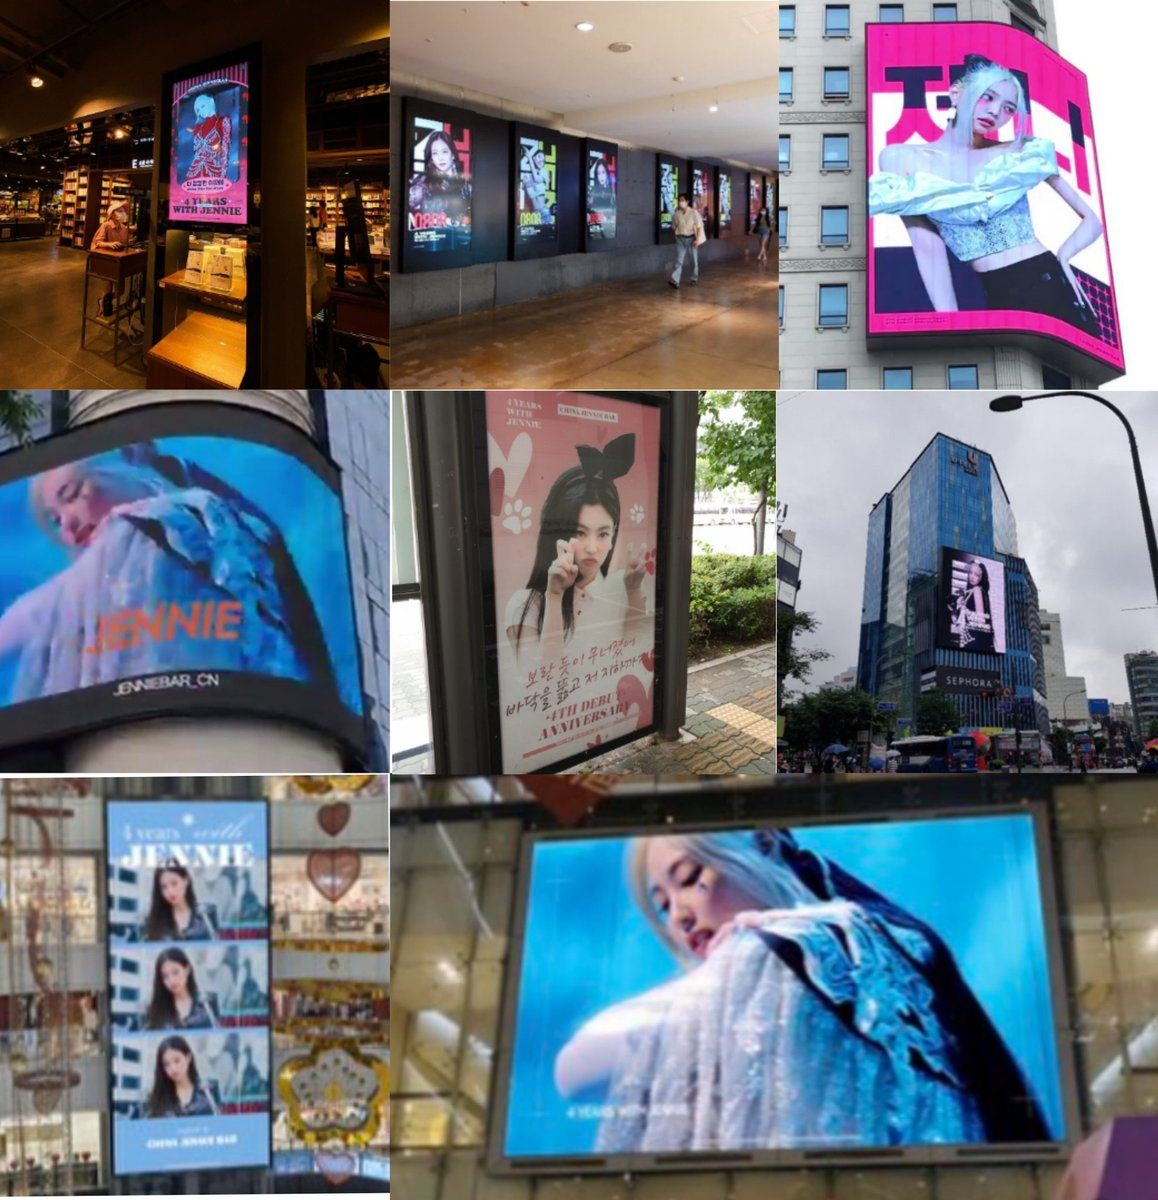 let's talk about jenniebar's projects, they didn't ask us help in funds this year so we can buy many copies of bp1 and they used their own money and pulled off alot of amazing gifts this year for #JENNIE. thank you c-jensetters, we int'l jensetters are thankful to all of you!  pic.twitter.com/qMP0mz66MV